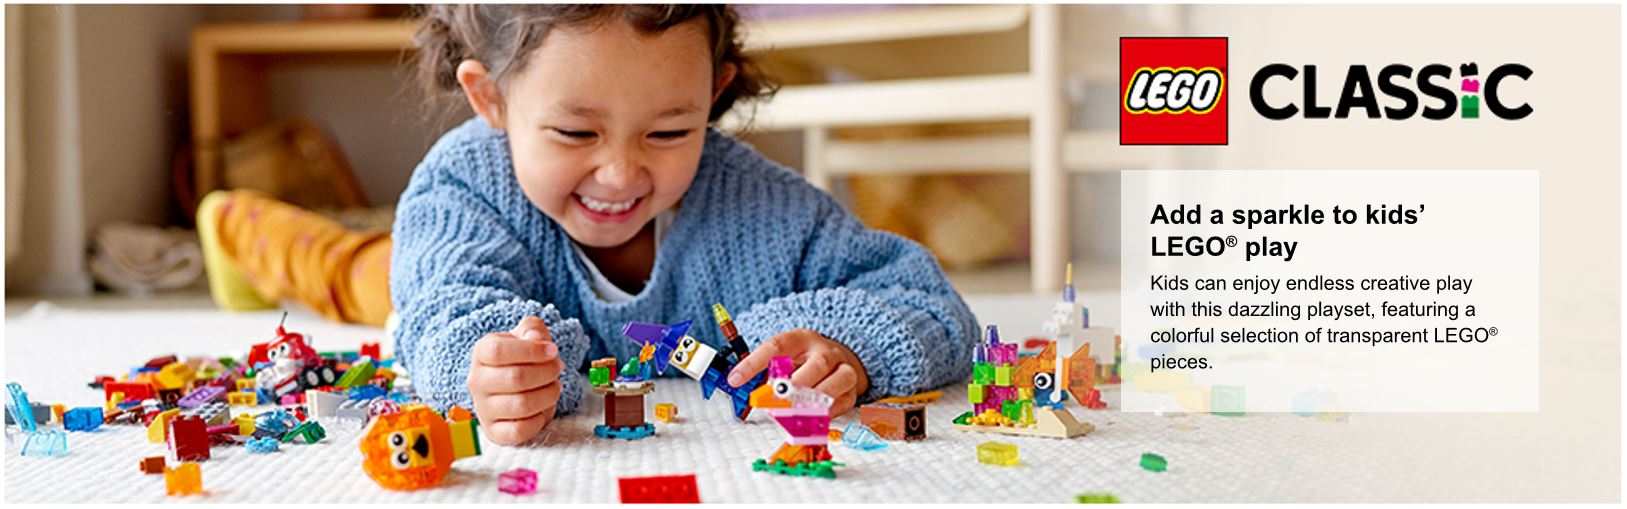 child playing with lego pieces